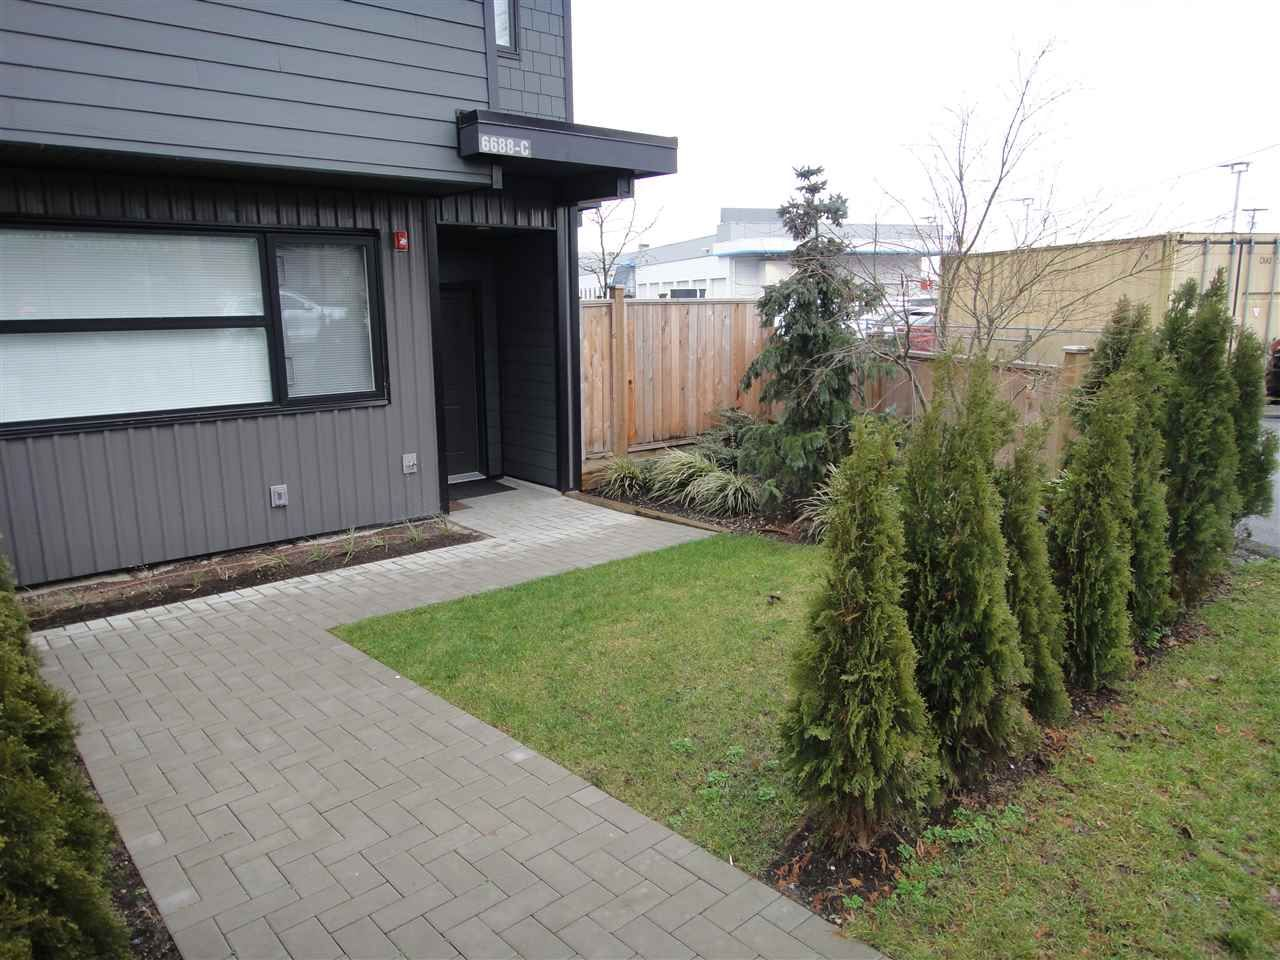 """Photo 2: Photos: C 6688 DUFFERIN Avenue in Burnaby: Upper Deer Lake Townhouse for sale in """"DUFFERIN EIGHT TOWNHOMES"""" (Burnaby South)  : MLS®# R2027335"""